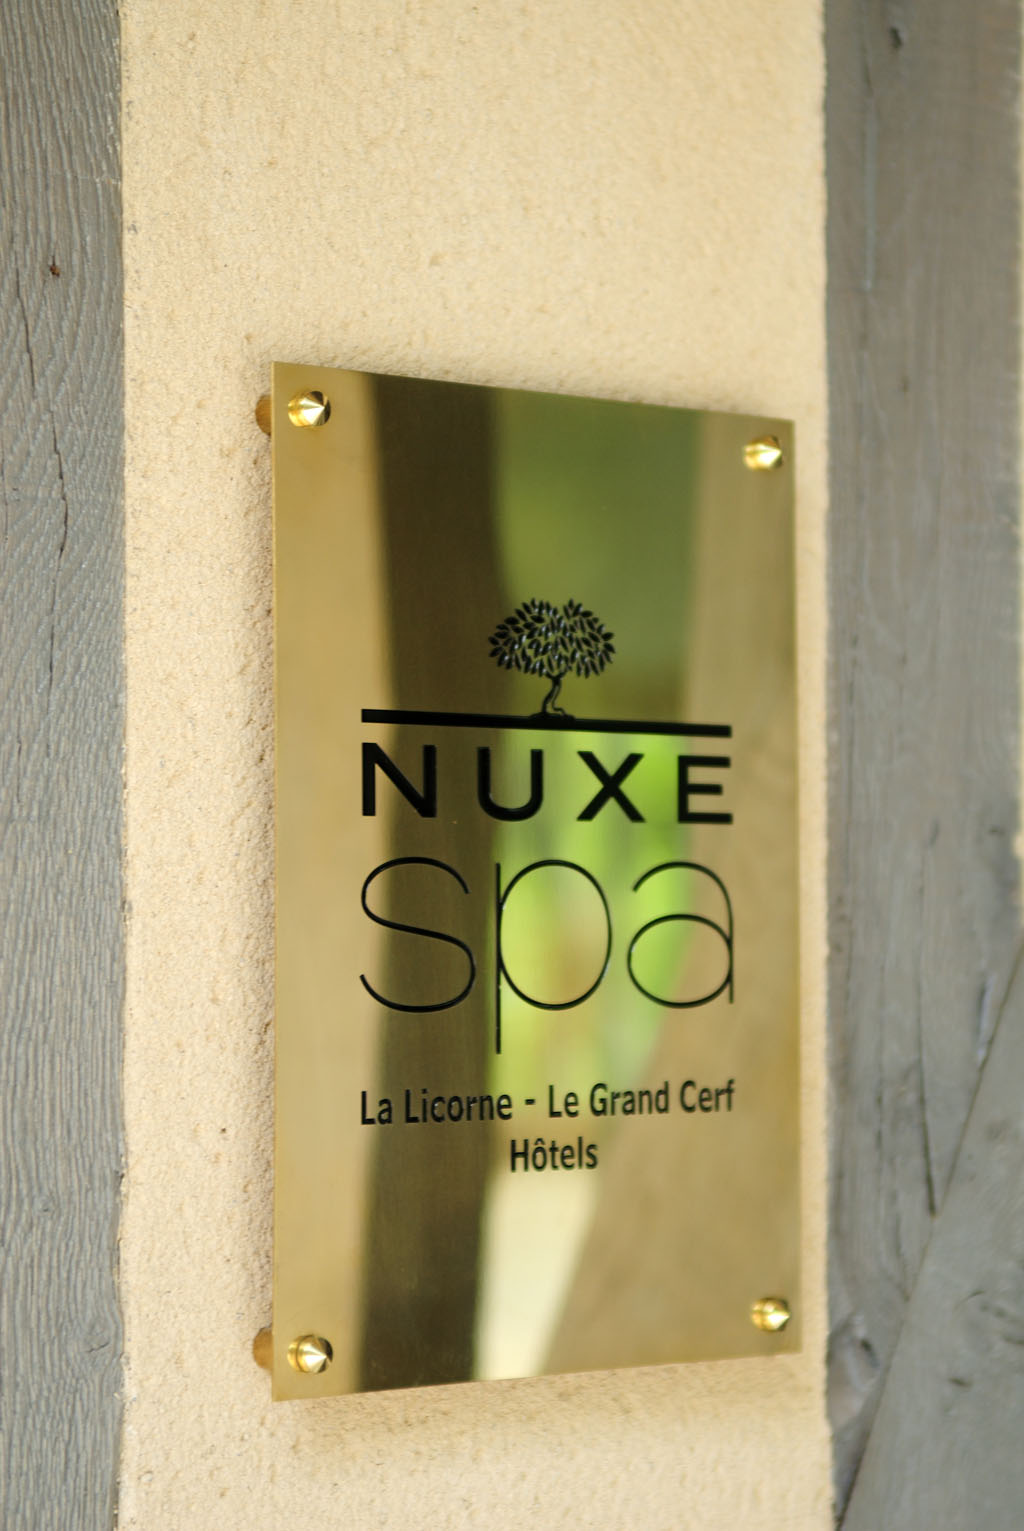 Spa nuxe normandie